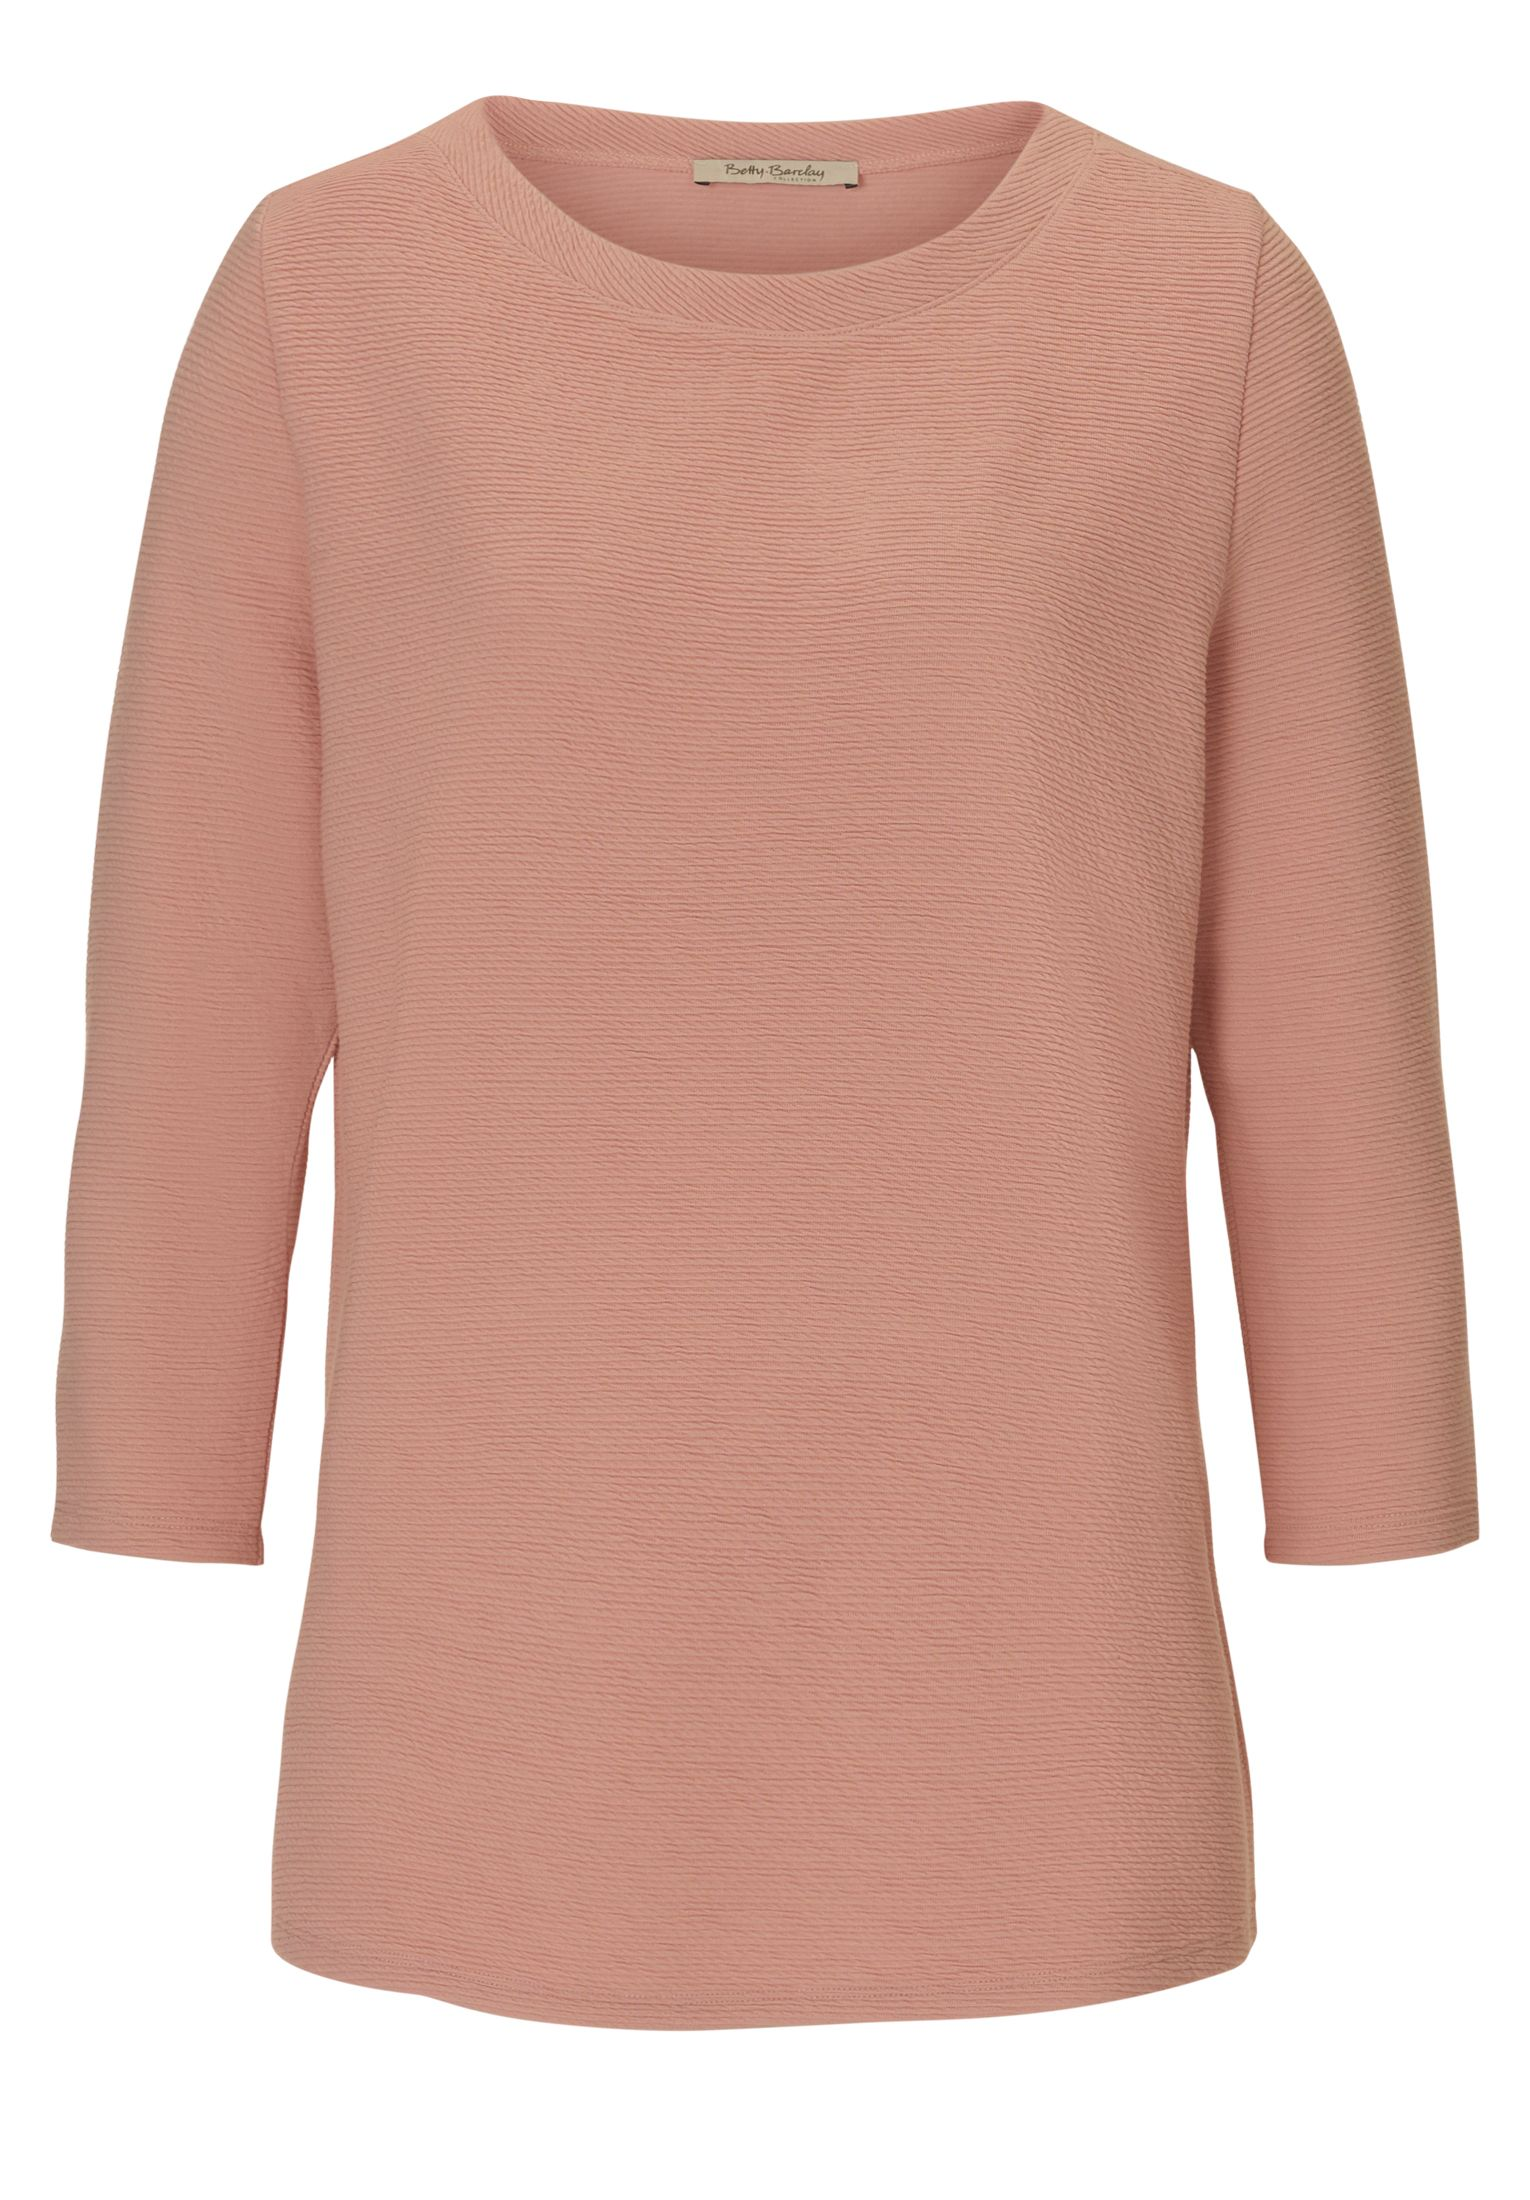 Betty Barclay Bell Sleeved Top, Rose